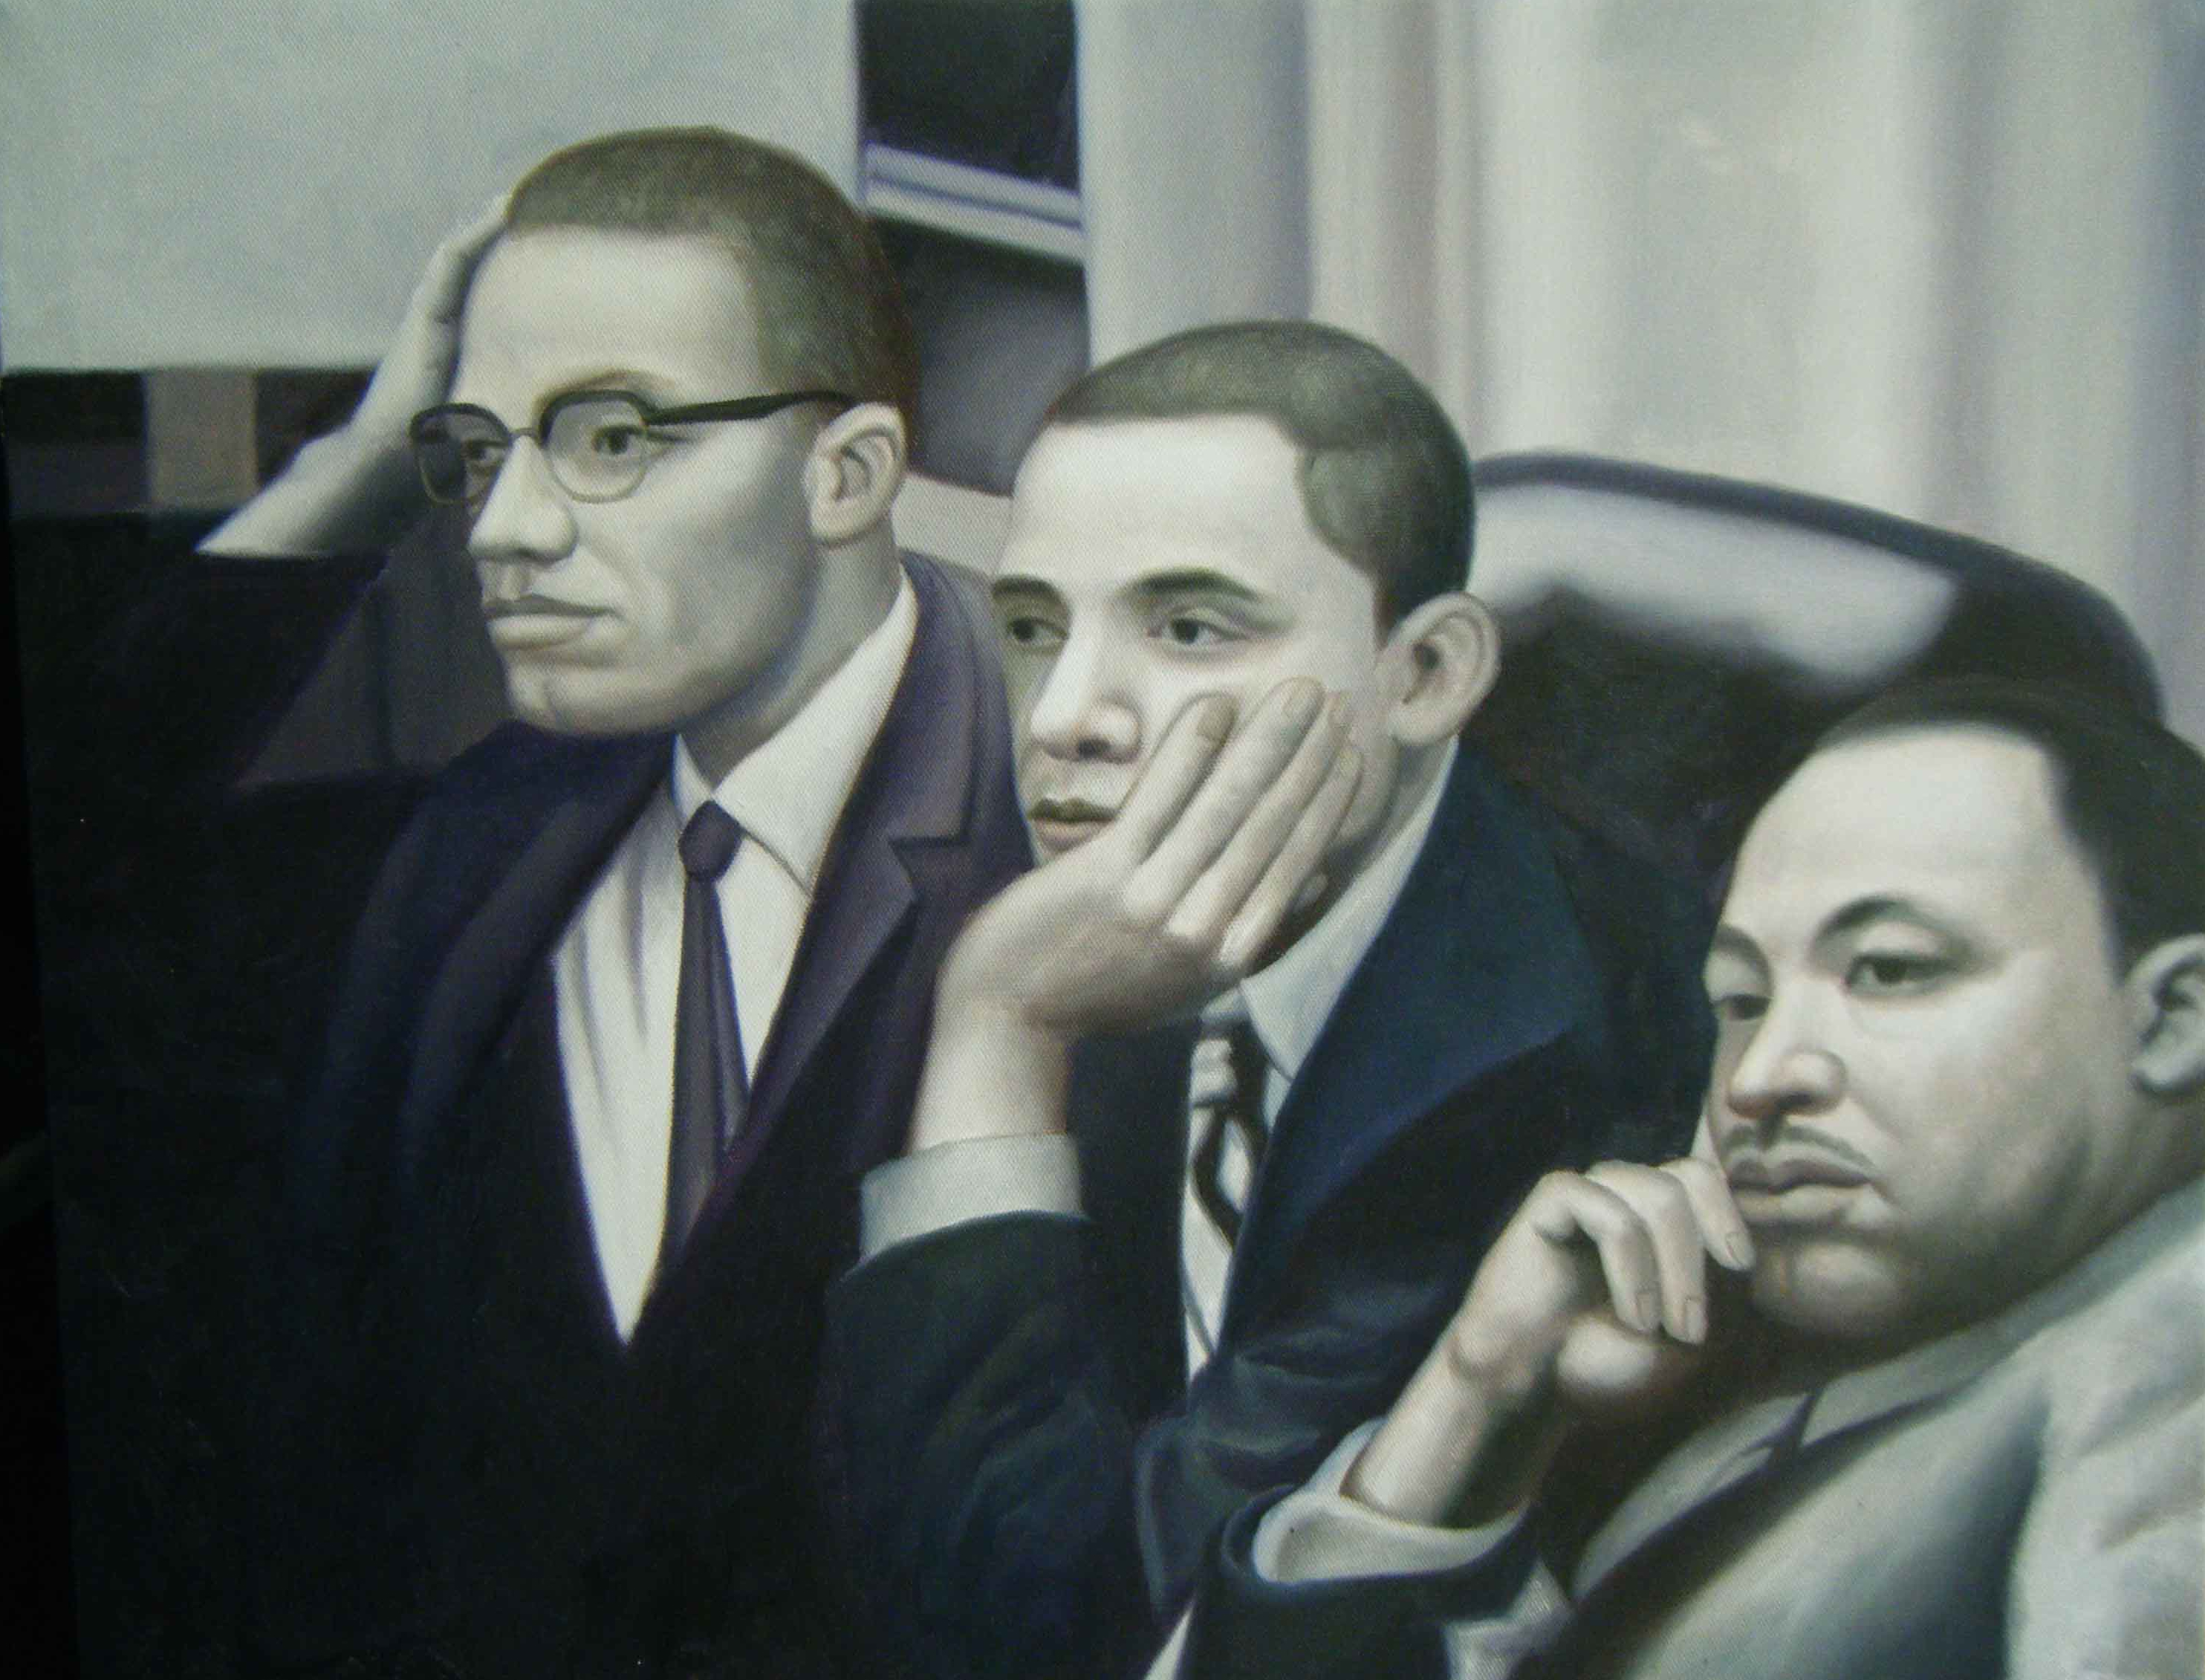 malcolm x obama and martin luther king jr moreau art malcolm x obama and martin luther king jr